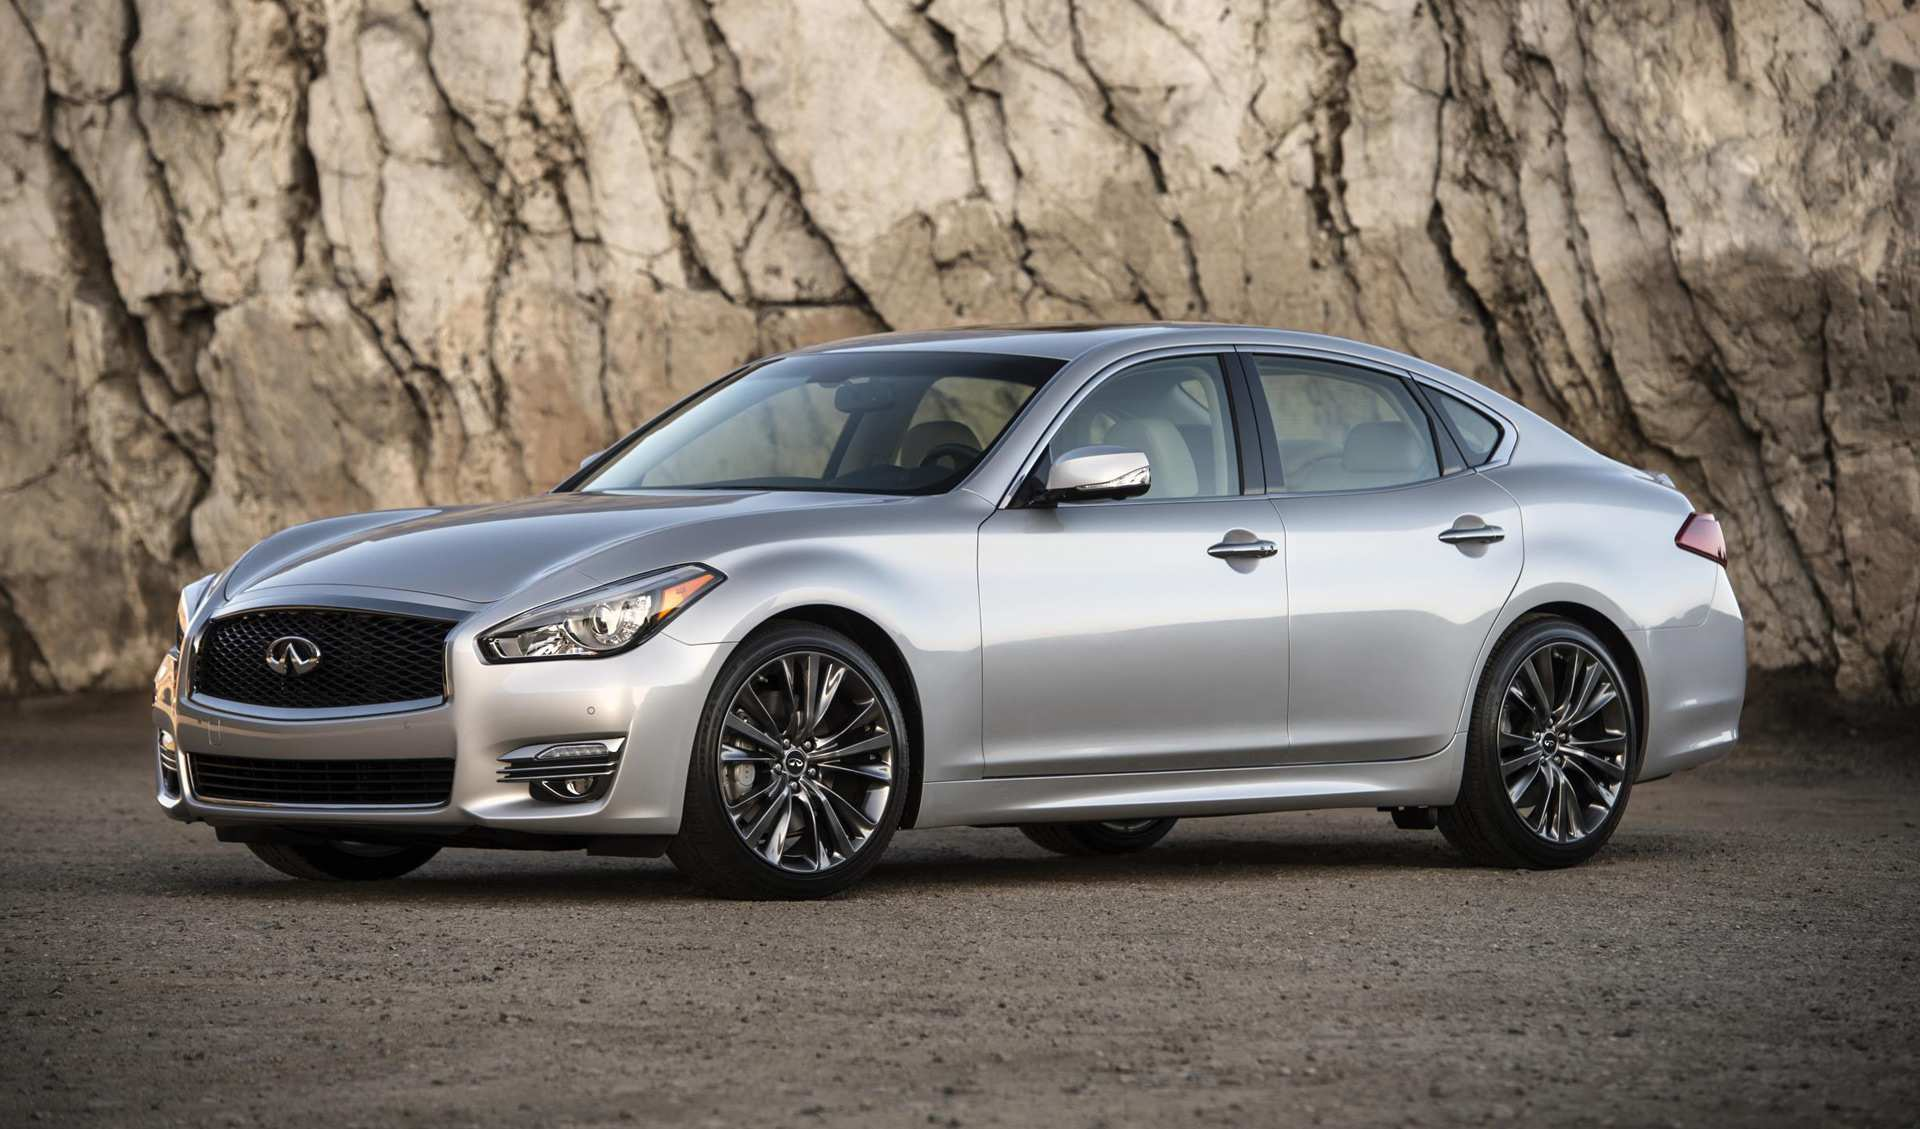 91 The Best 2020 Infiniti Lineup Overview